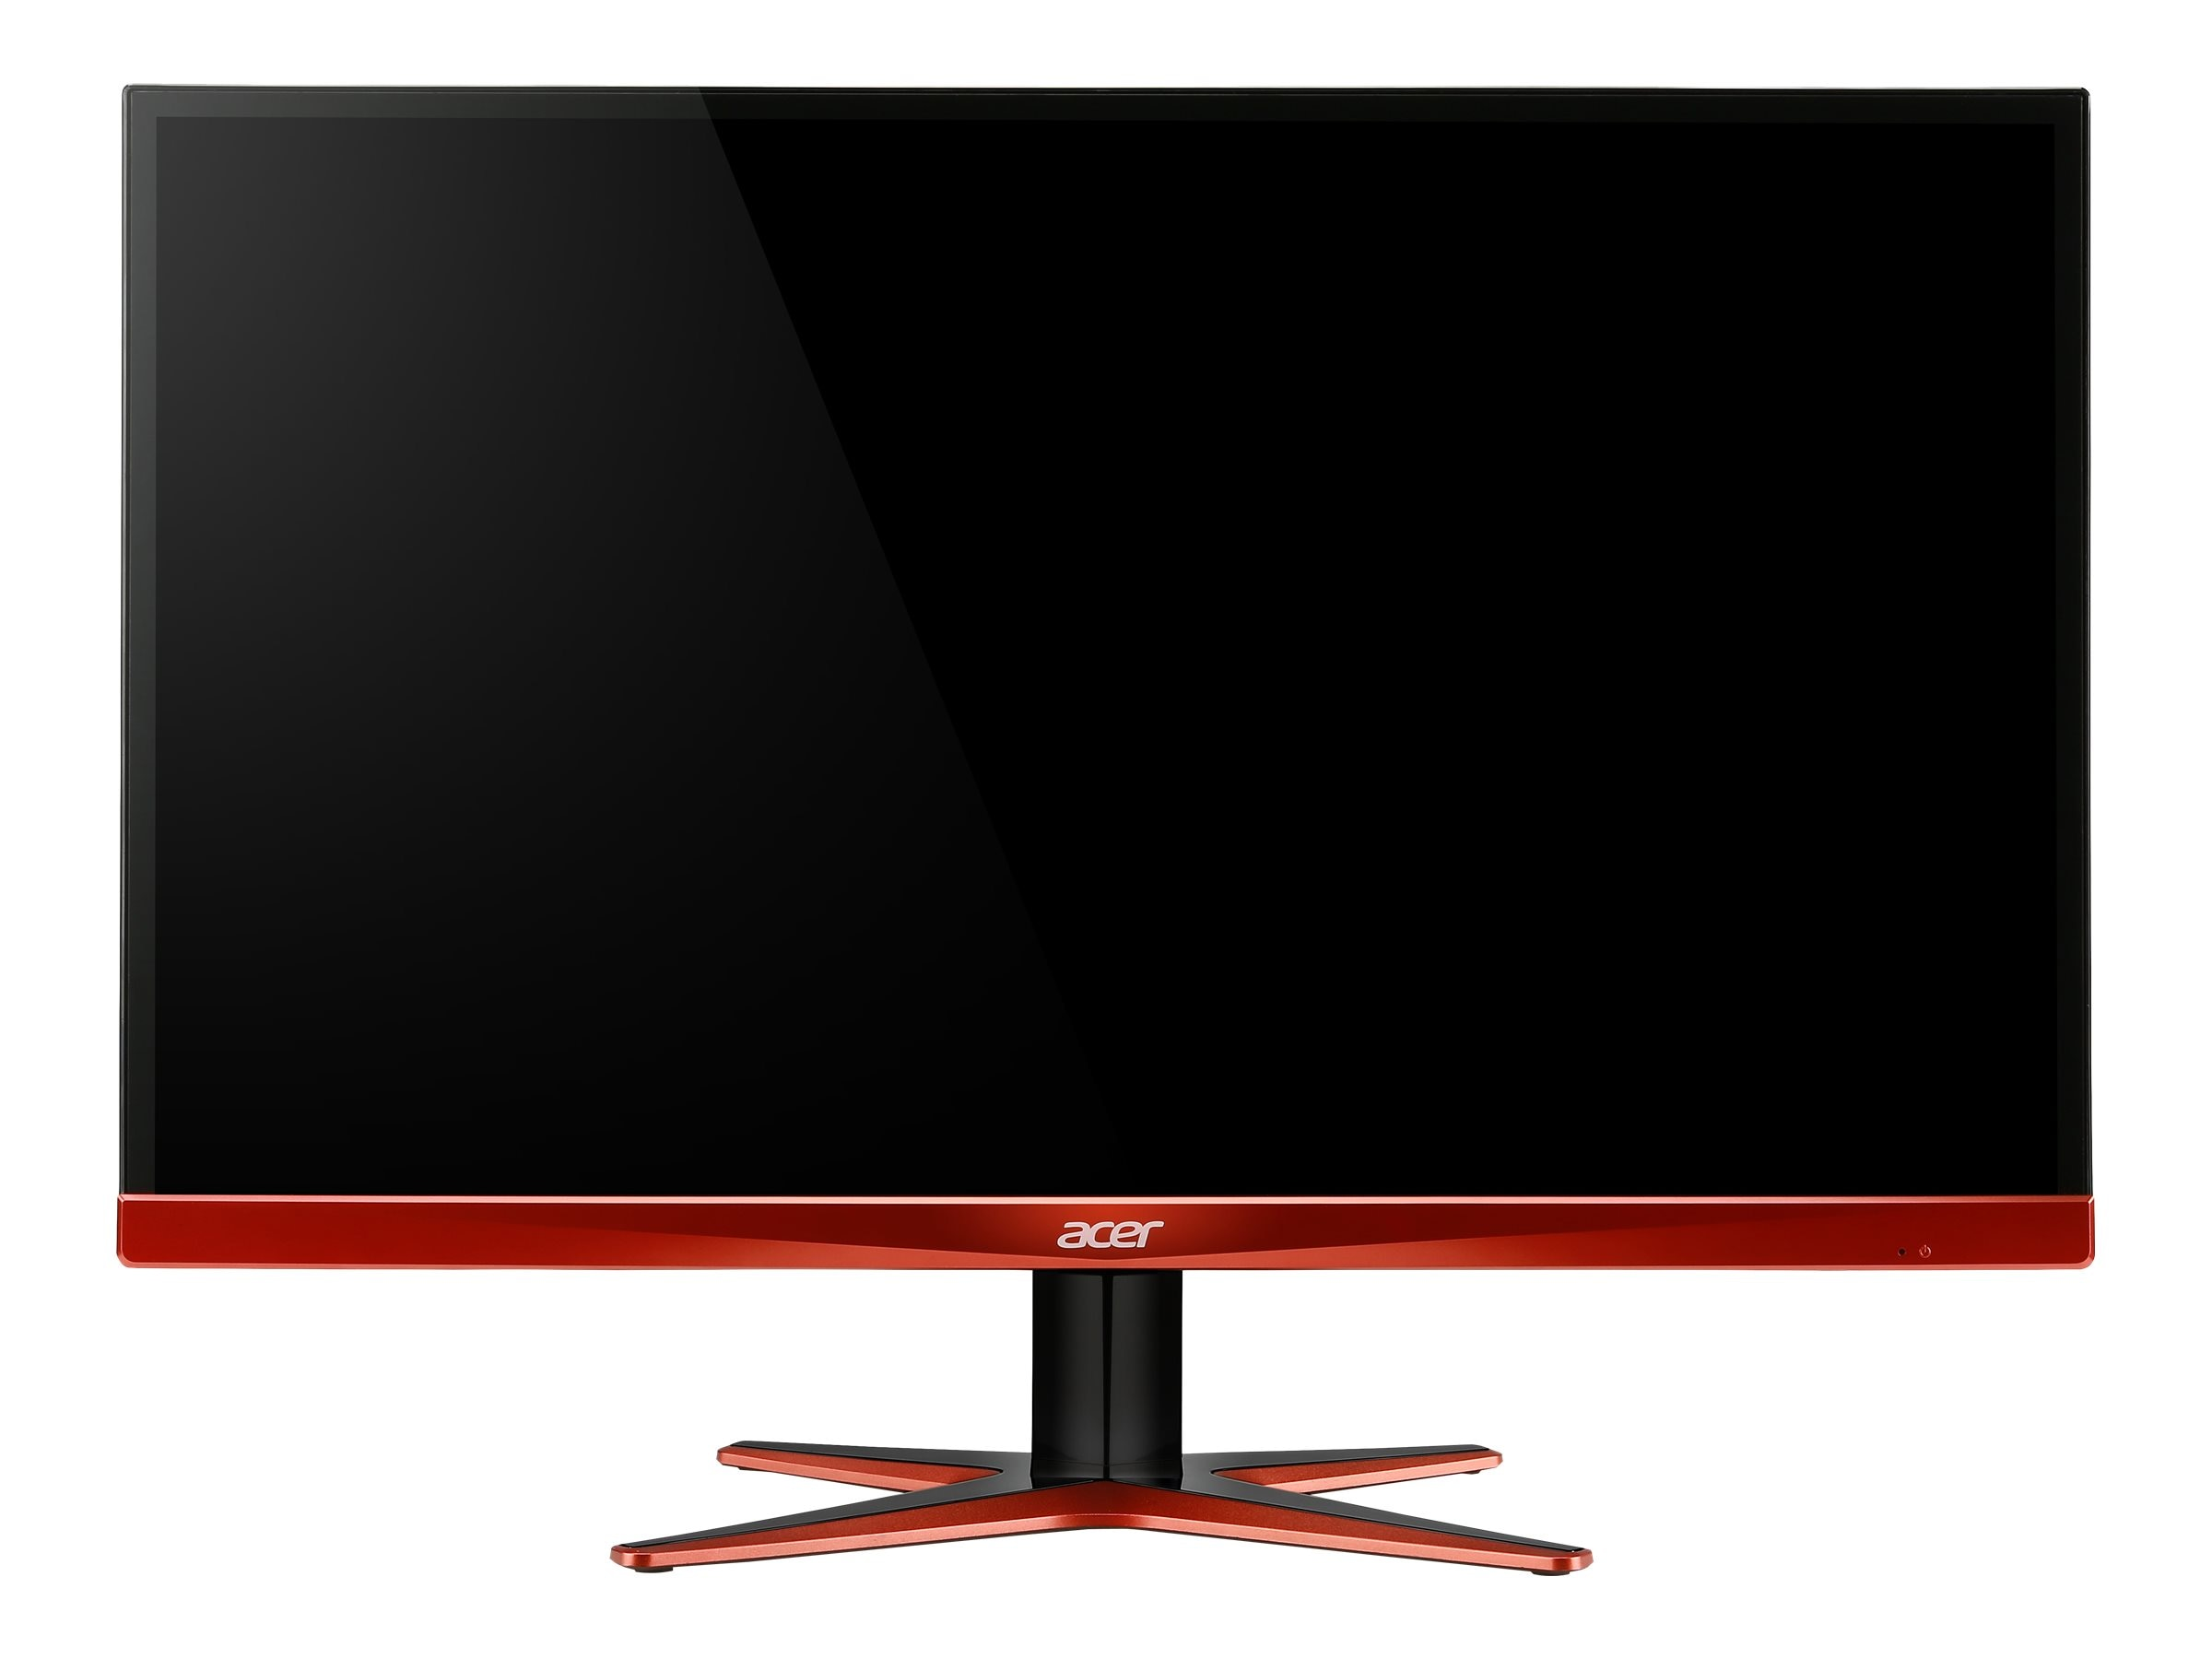 Acer 27 XG270HU omidpx WQHD LED-LCD Monitor, Black Red, UM.HG0AA.001, 20658571, Monitors - LED-LCD